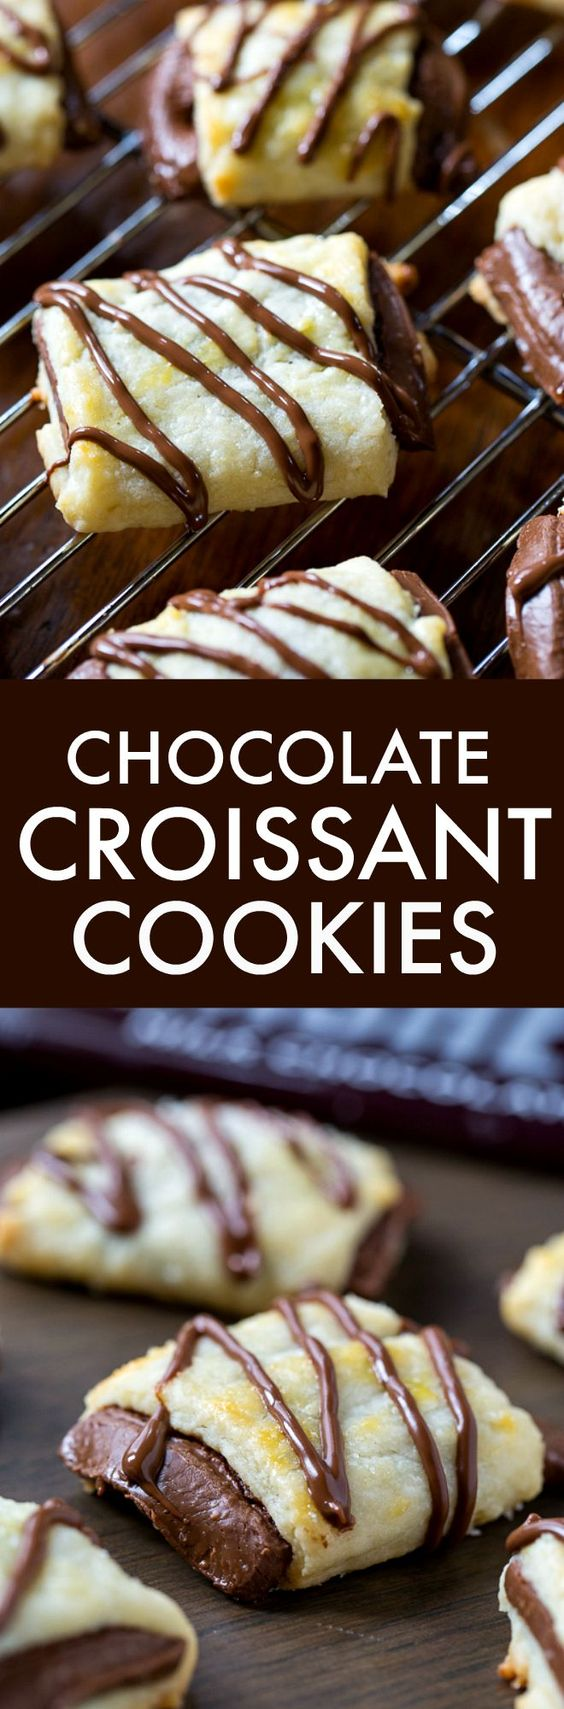 Chocolate Croissant Cookies - Spicy Southern Kitchen